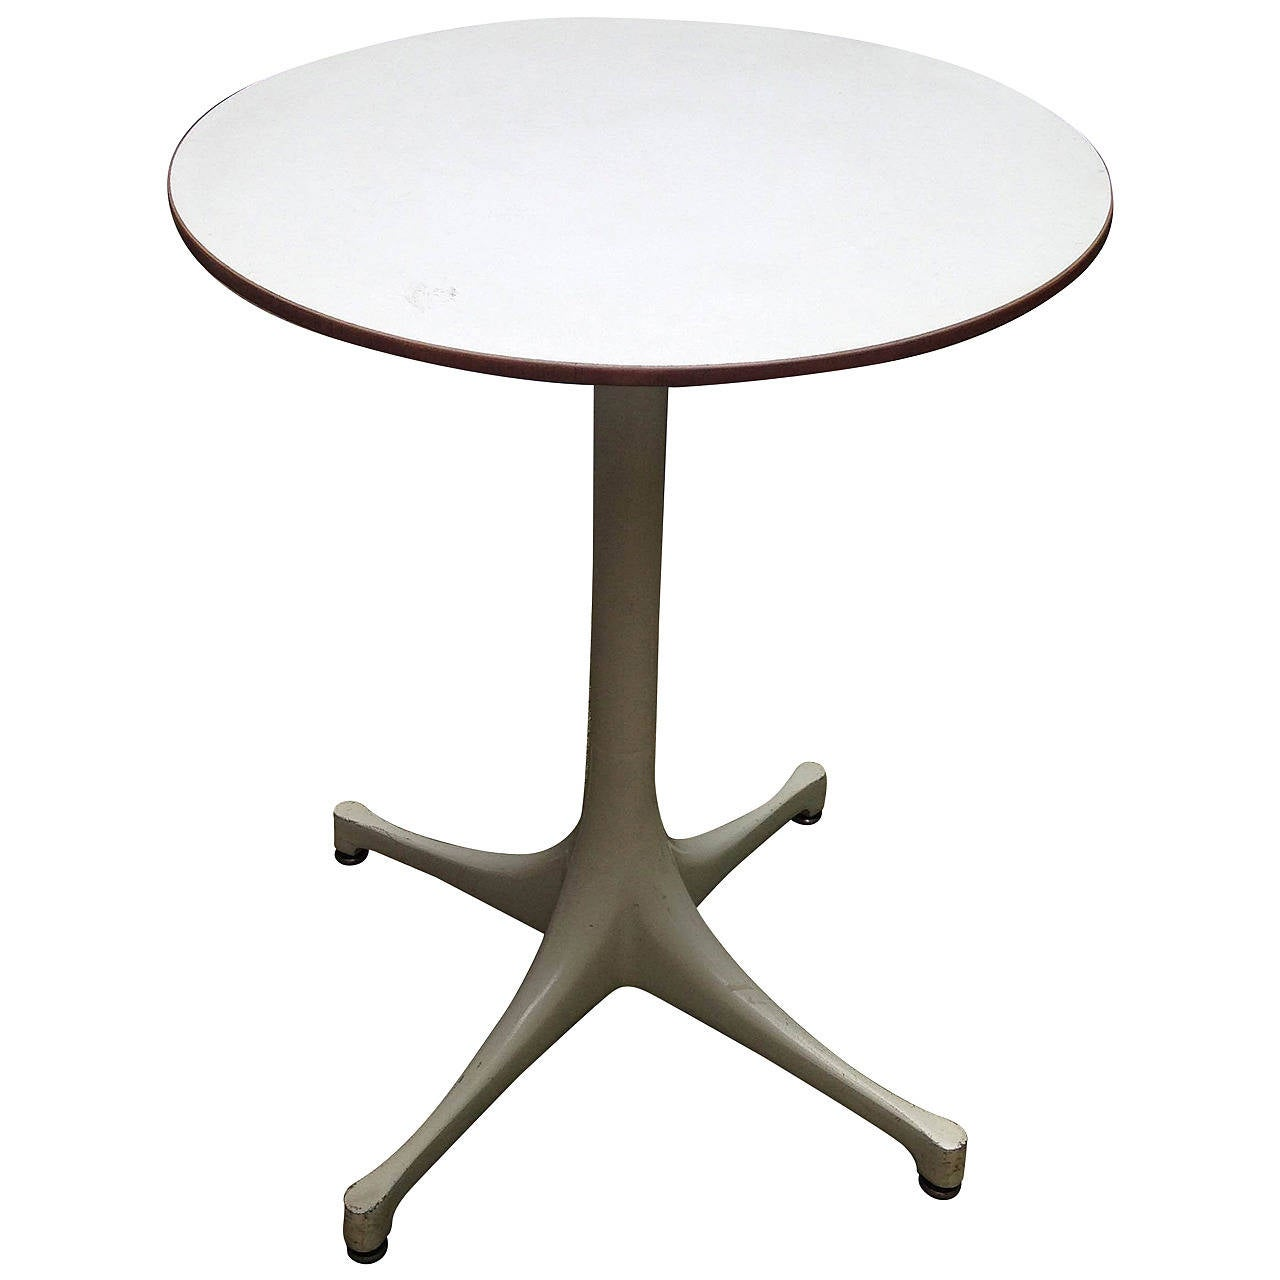 George Nelson Occasional Table for Herman Miller, 1952